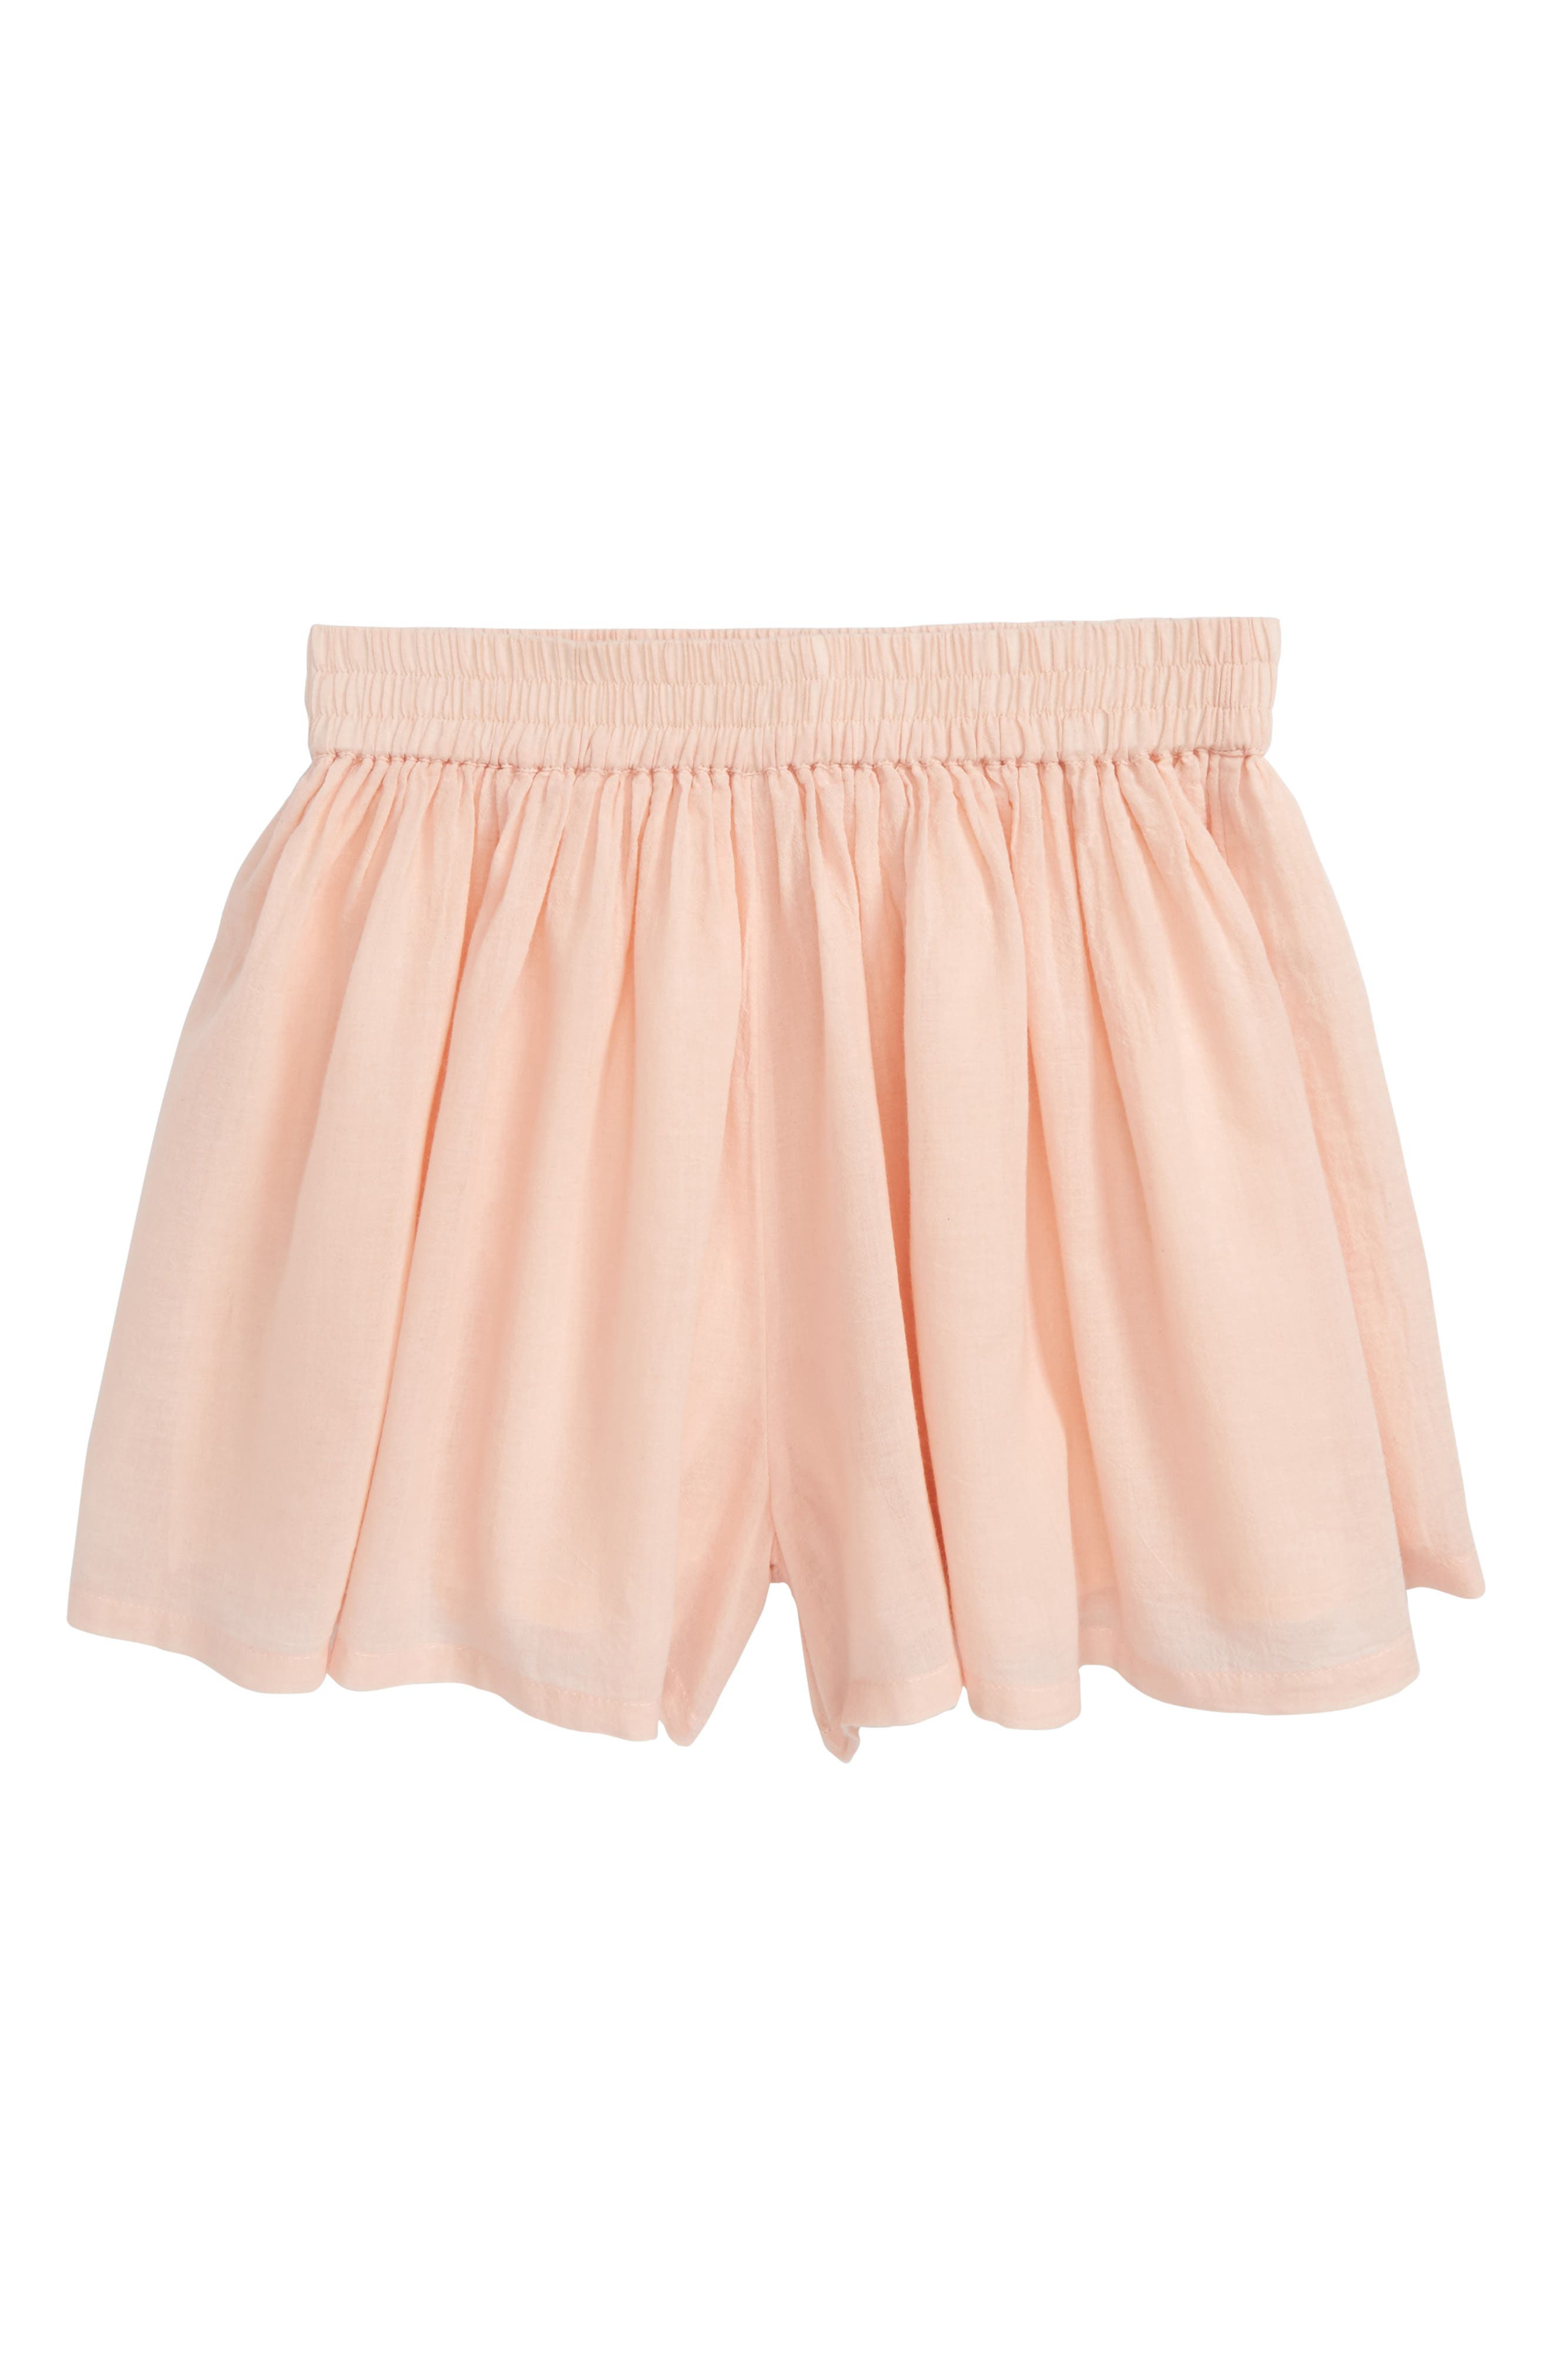 Ruby & Bloom Skort (Toddler Girls, Little Girls & Big Girls)